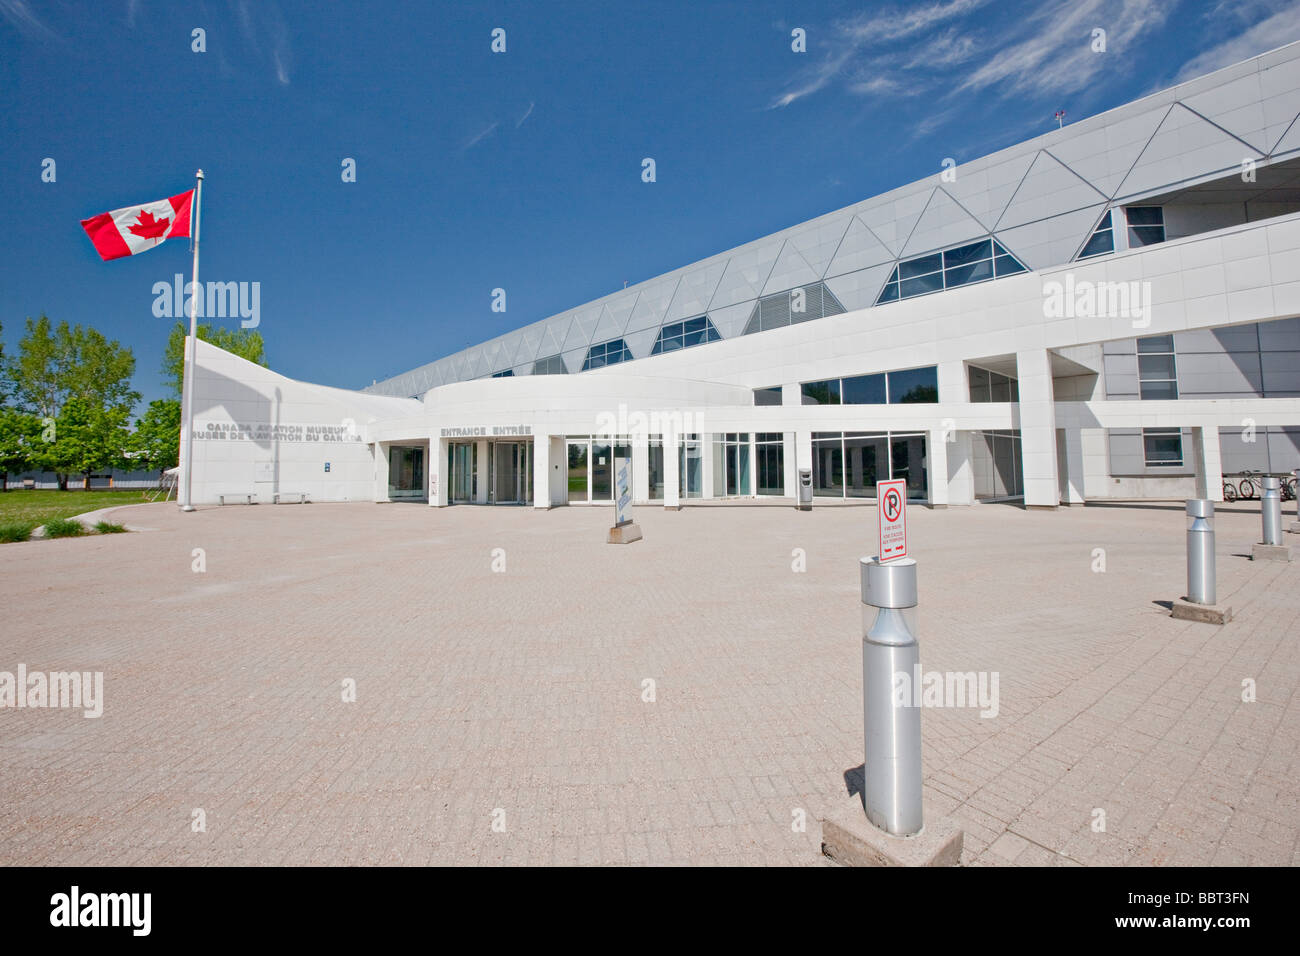 National Aviation Museum, Ottawa, Ontario, Canada - Stock Image